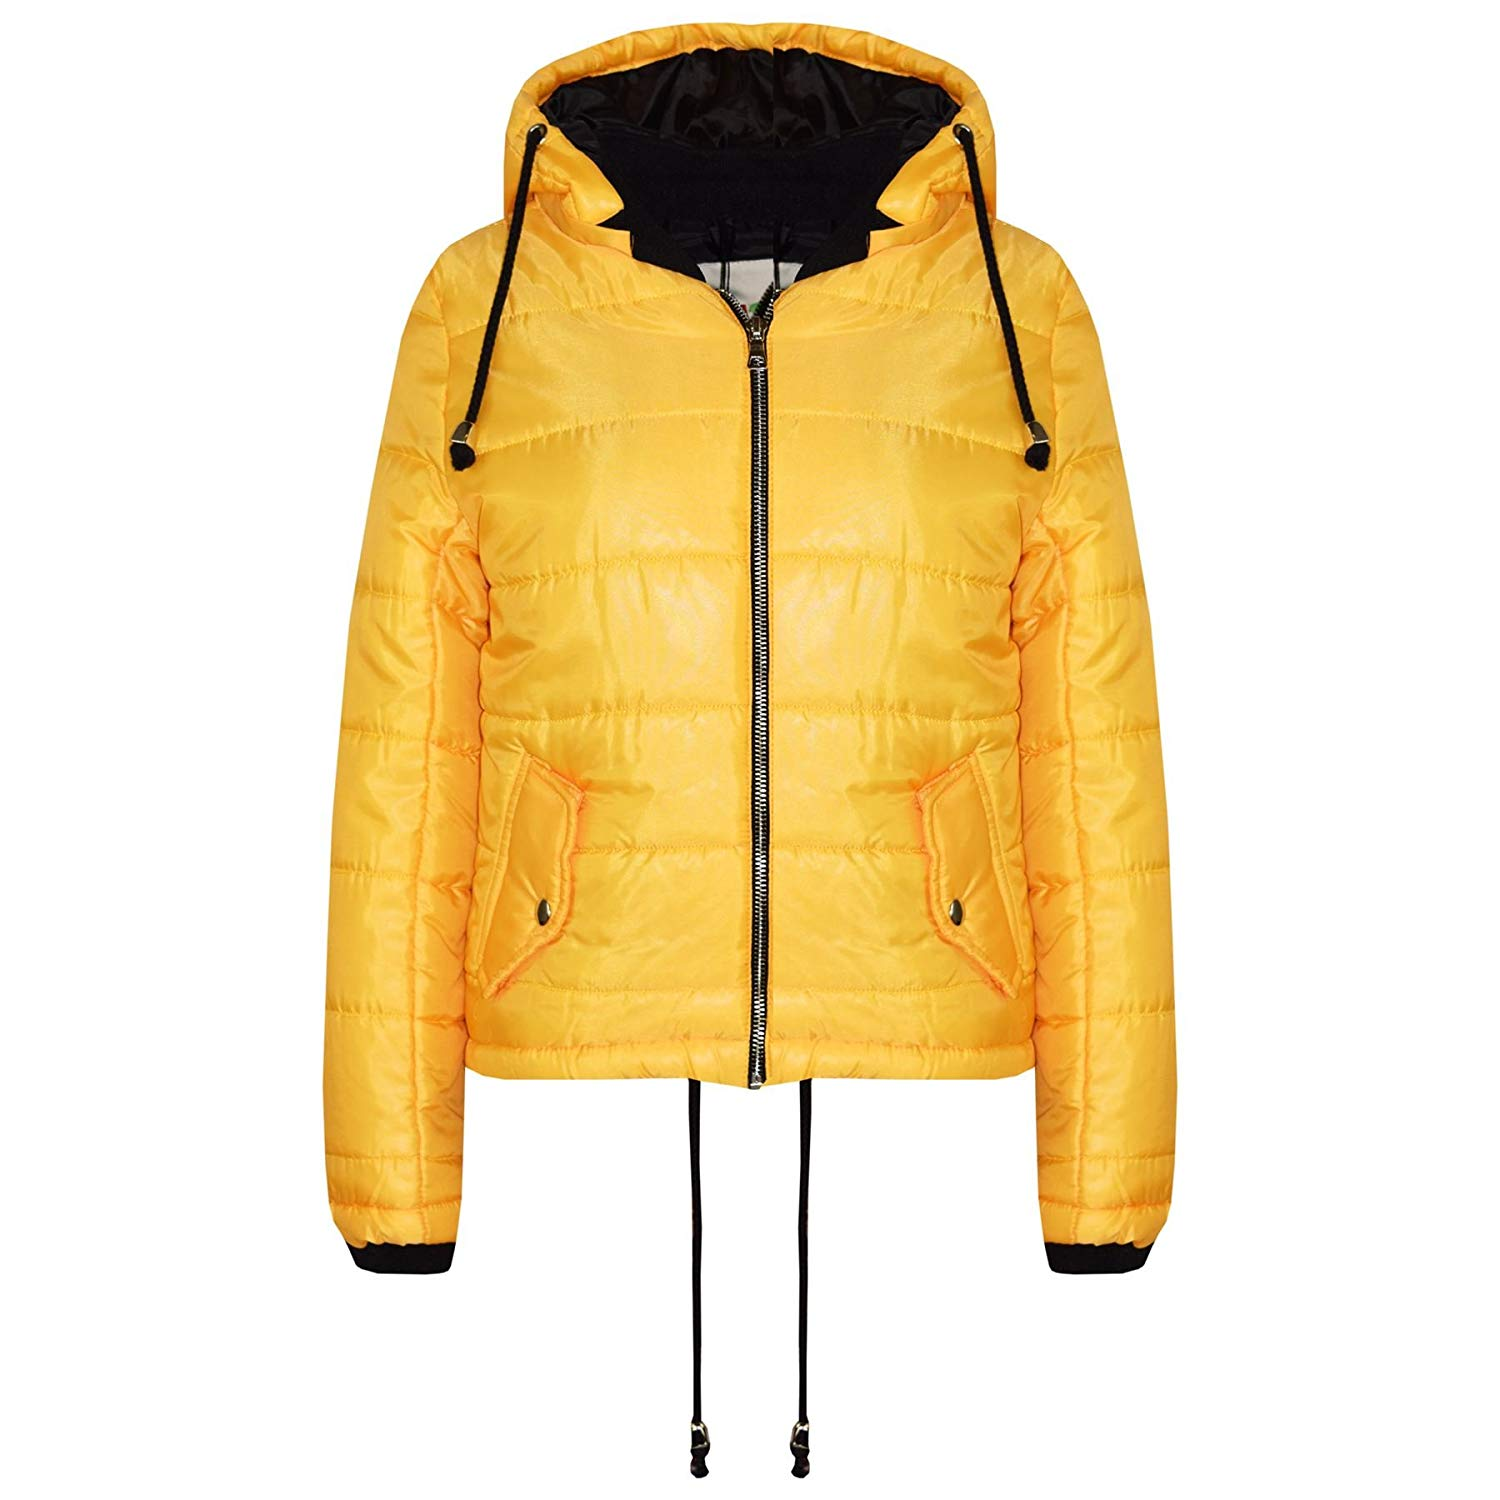 aac10a74822 Get Quotations · A2Z 4 Kids® Girls Jacket Kids Bella High Shine Mustard  Hooded Padded Quilted Puffer Jackets